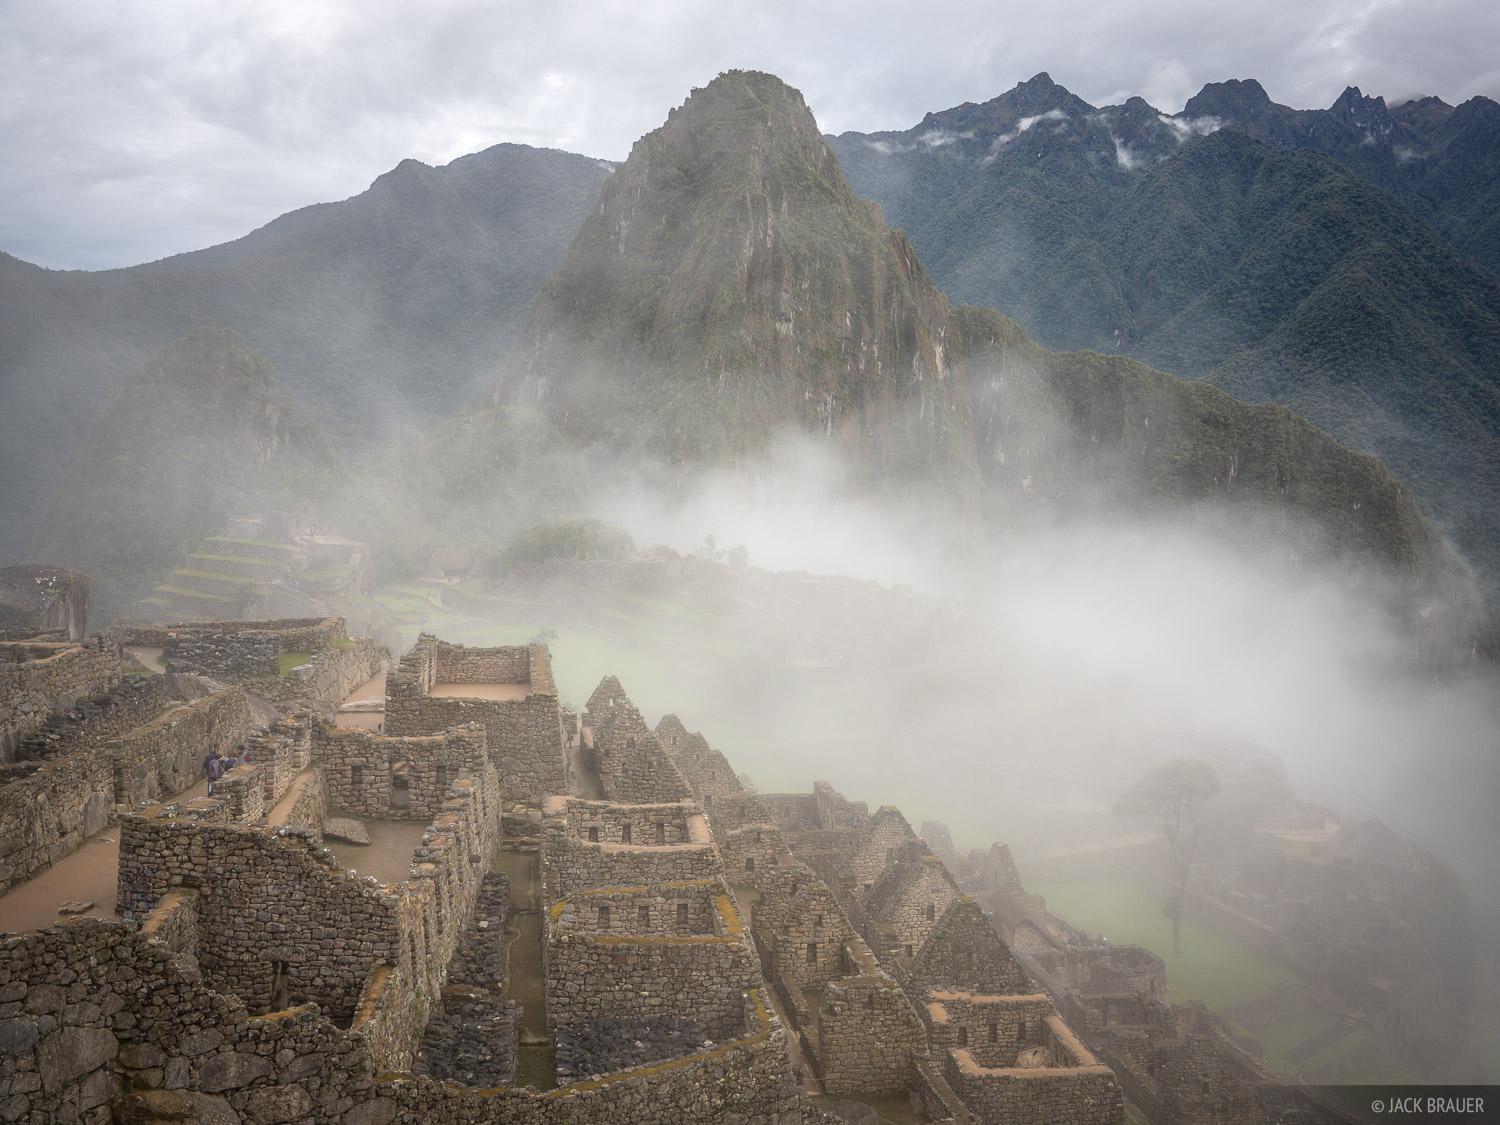 Misty clouds amongst the Incan ruins of Macchu Picchu.